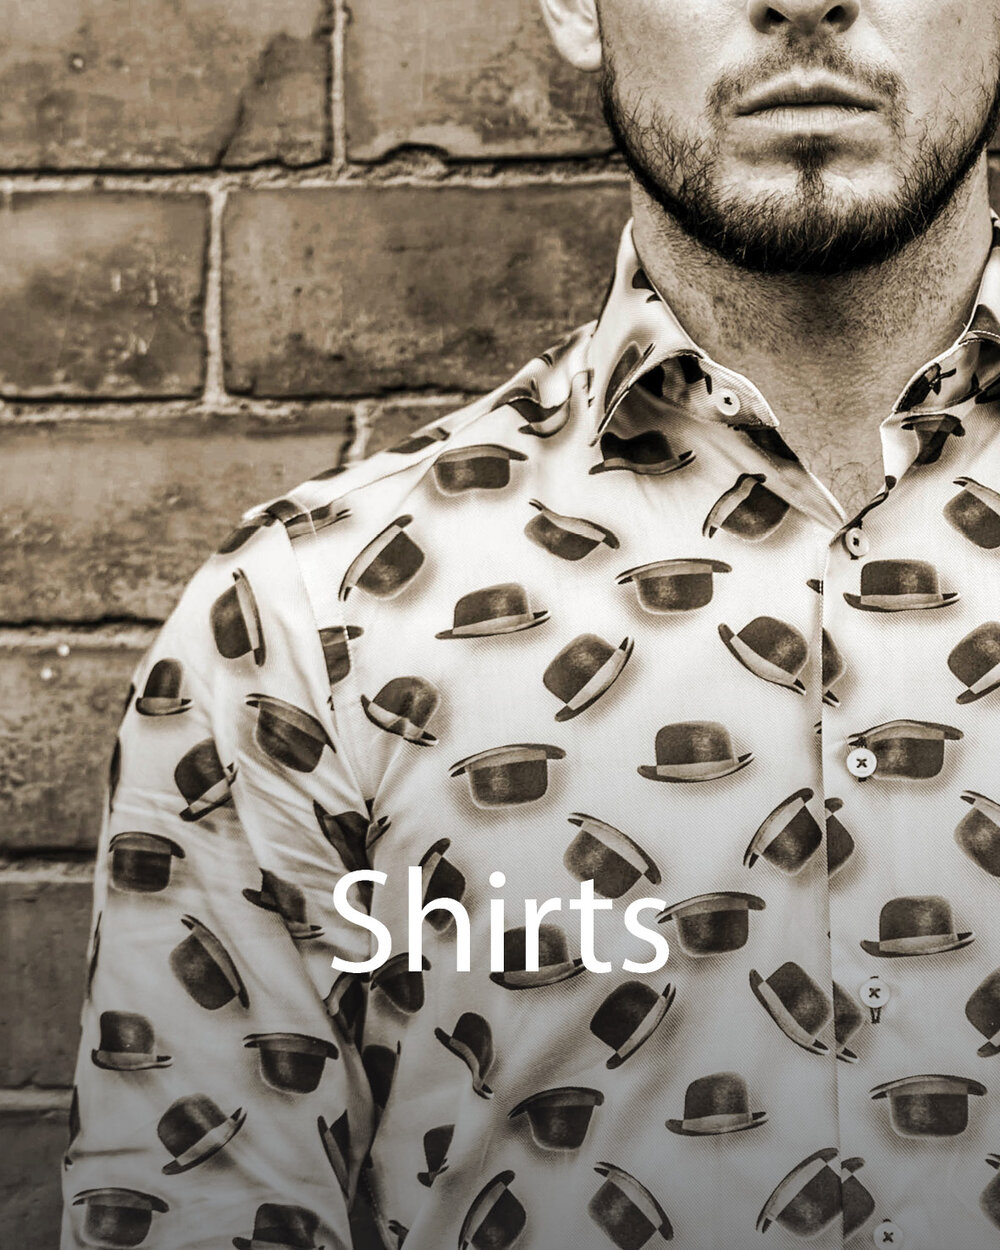 Image gateway to shirts shop page on Symonds of Hereford website